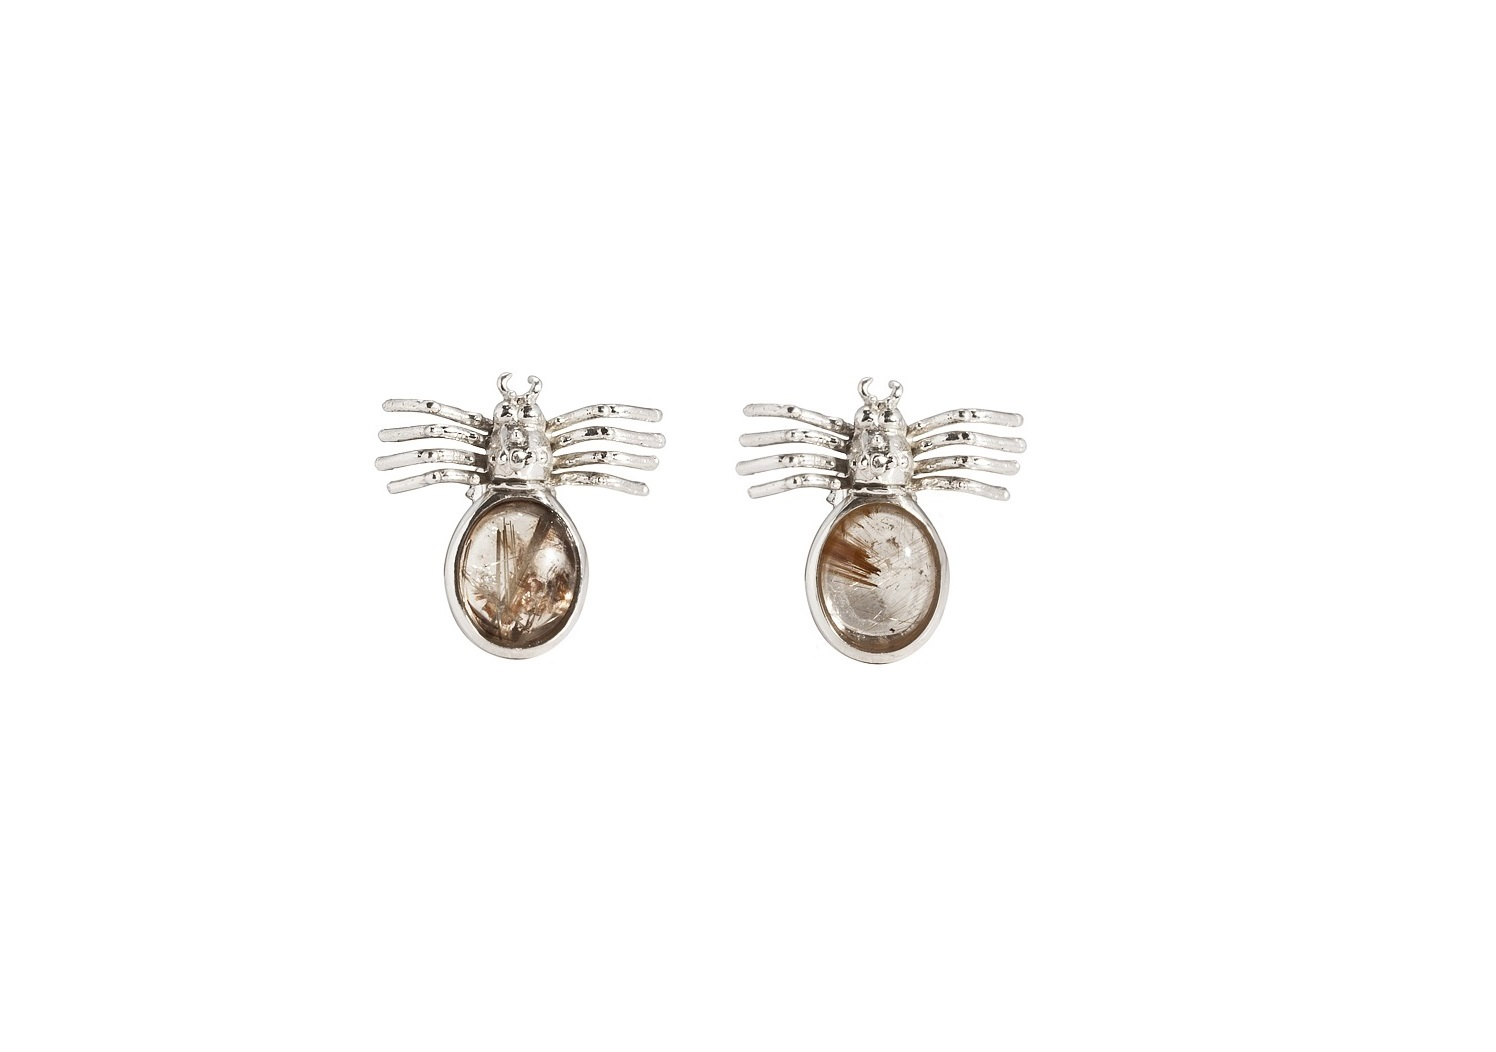 Spider silver earrings with oval rutil quartz